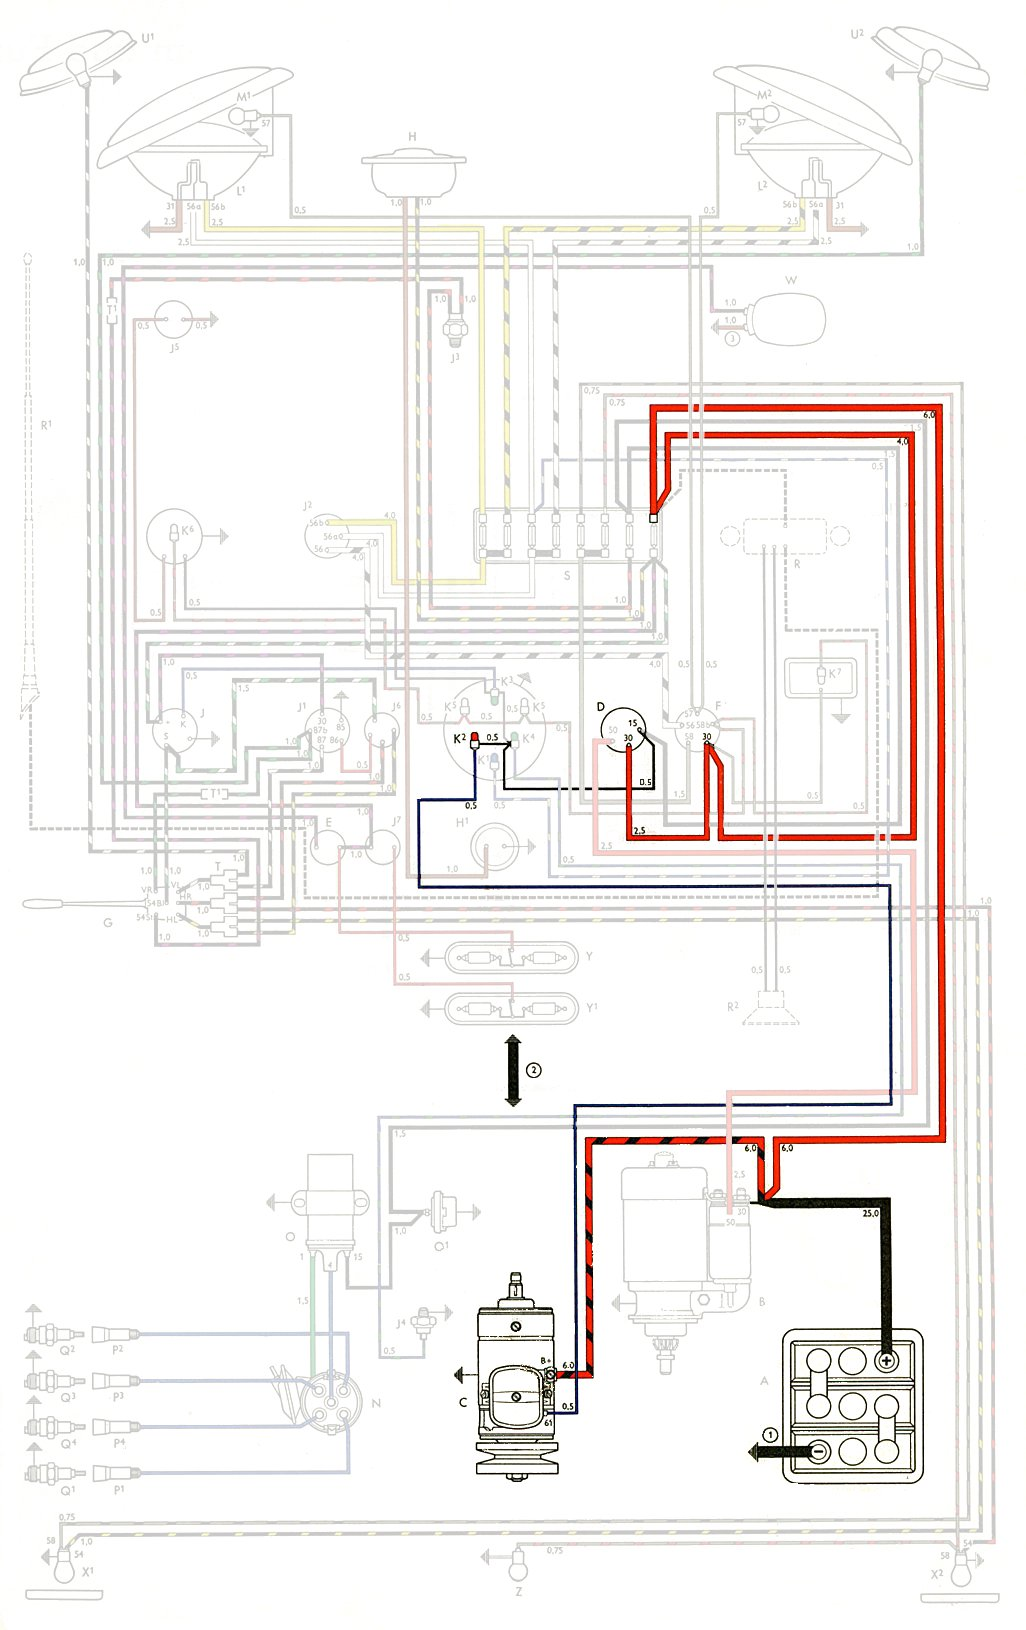 thesamba.com :: type 2 wiring diagrams vw generator wiring